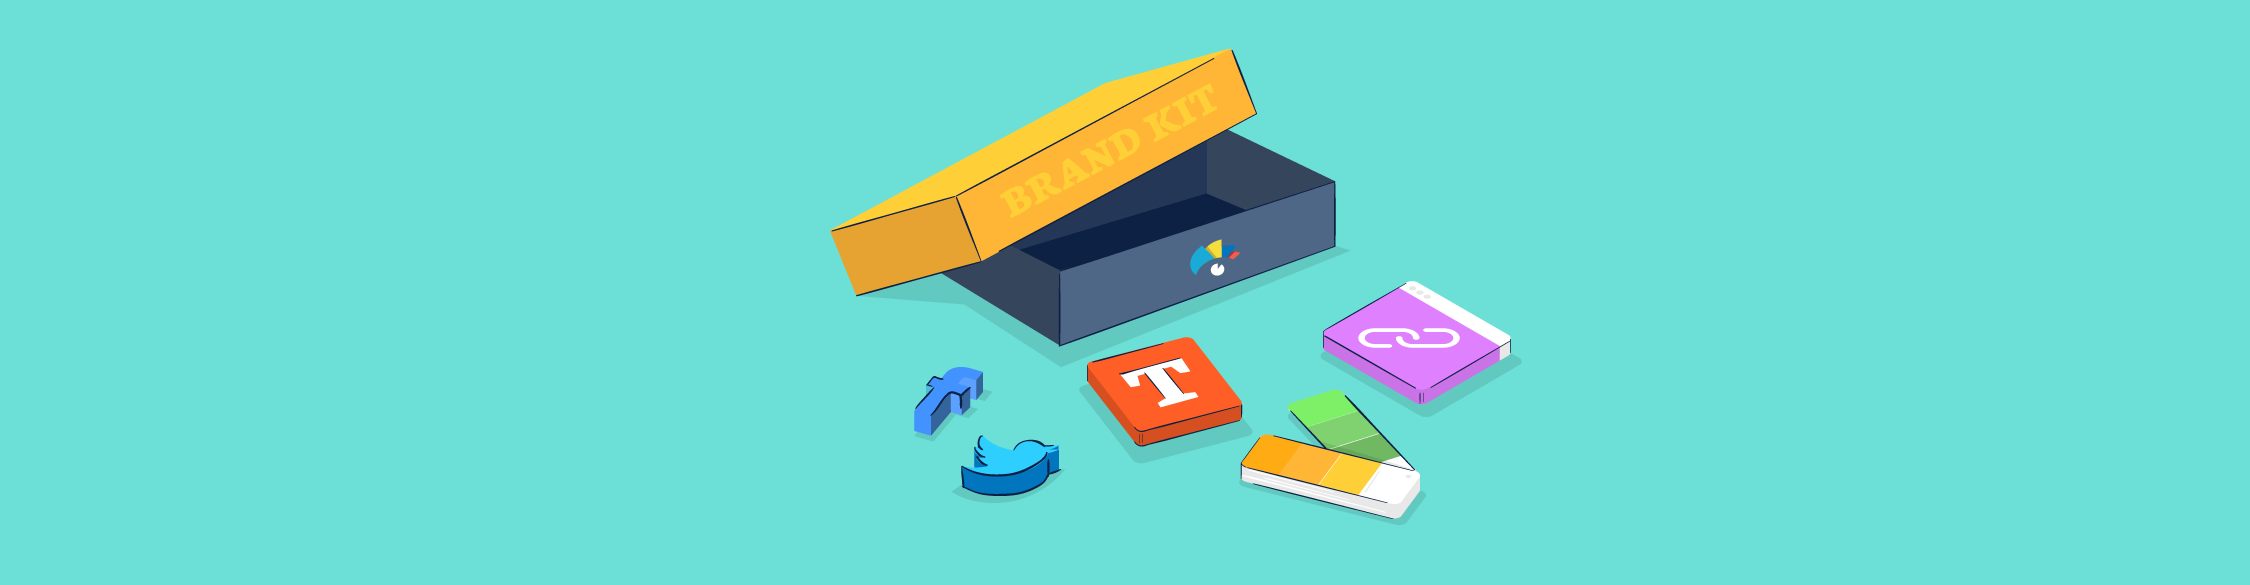 An illustration of an open box and brand elements scattered around it.